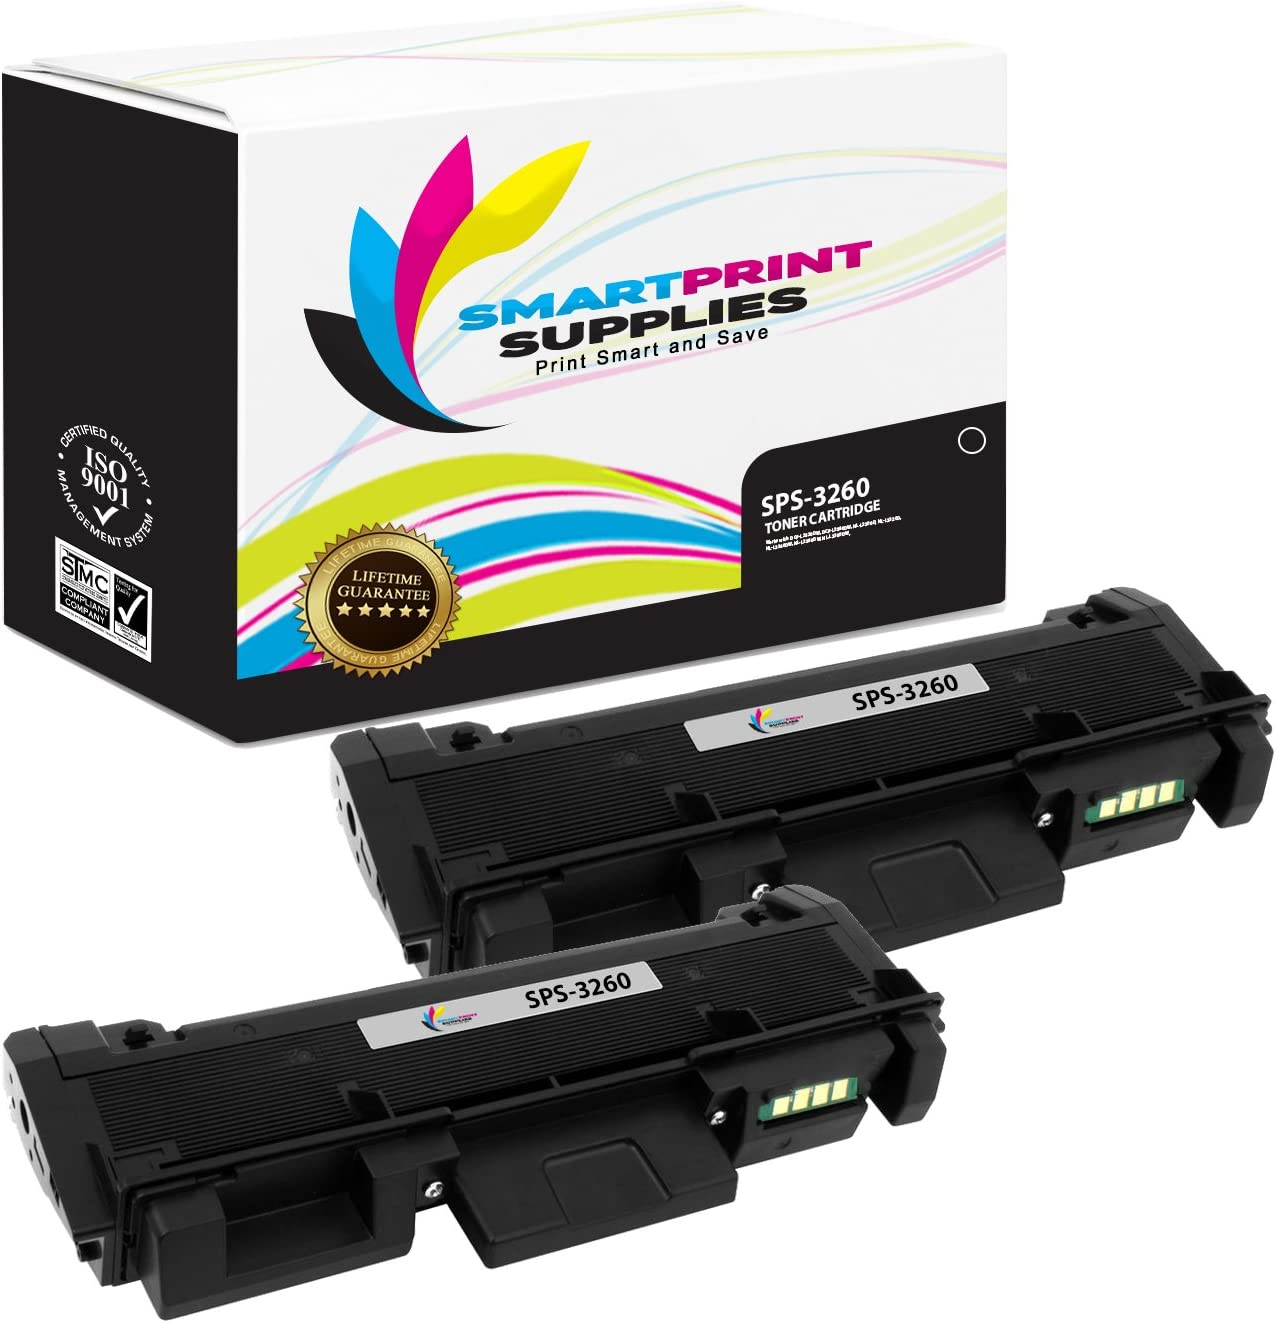 Smart Print Supplies Compatible 106R02777 Black Toner Cartridge Replacement for Xerox Phaser 3260, Workcentre 3215 3225 Printers (3,000 Pages) - 2 Pack